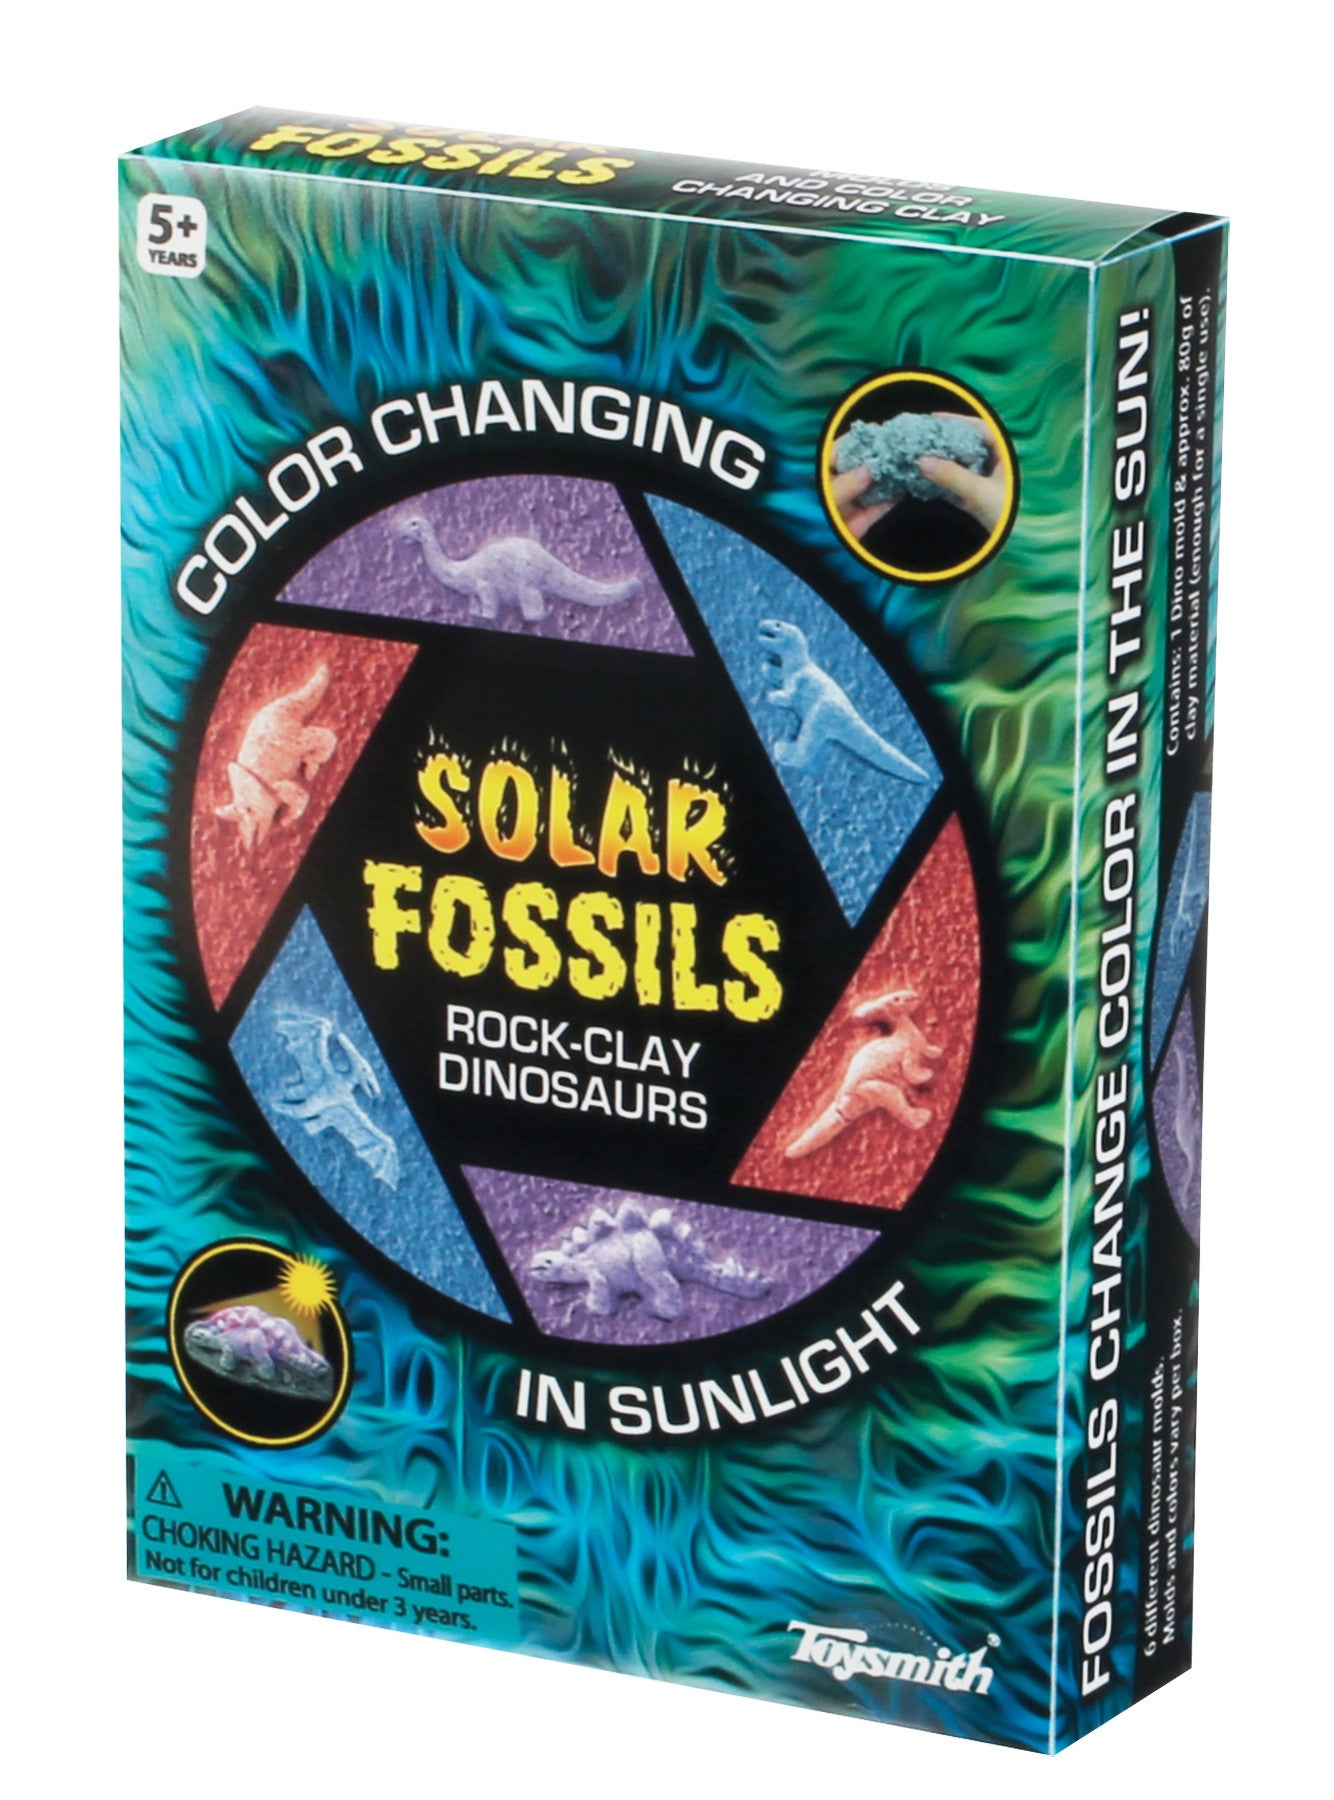 Color Changing Solar Fossil Rock Clay Dinosaur Styles Vary - Off The Wall Toys and Gifts